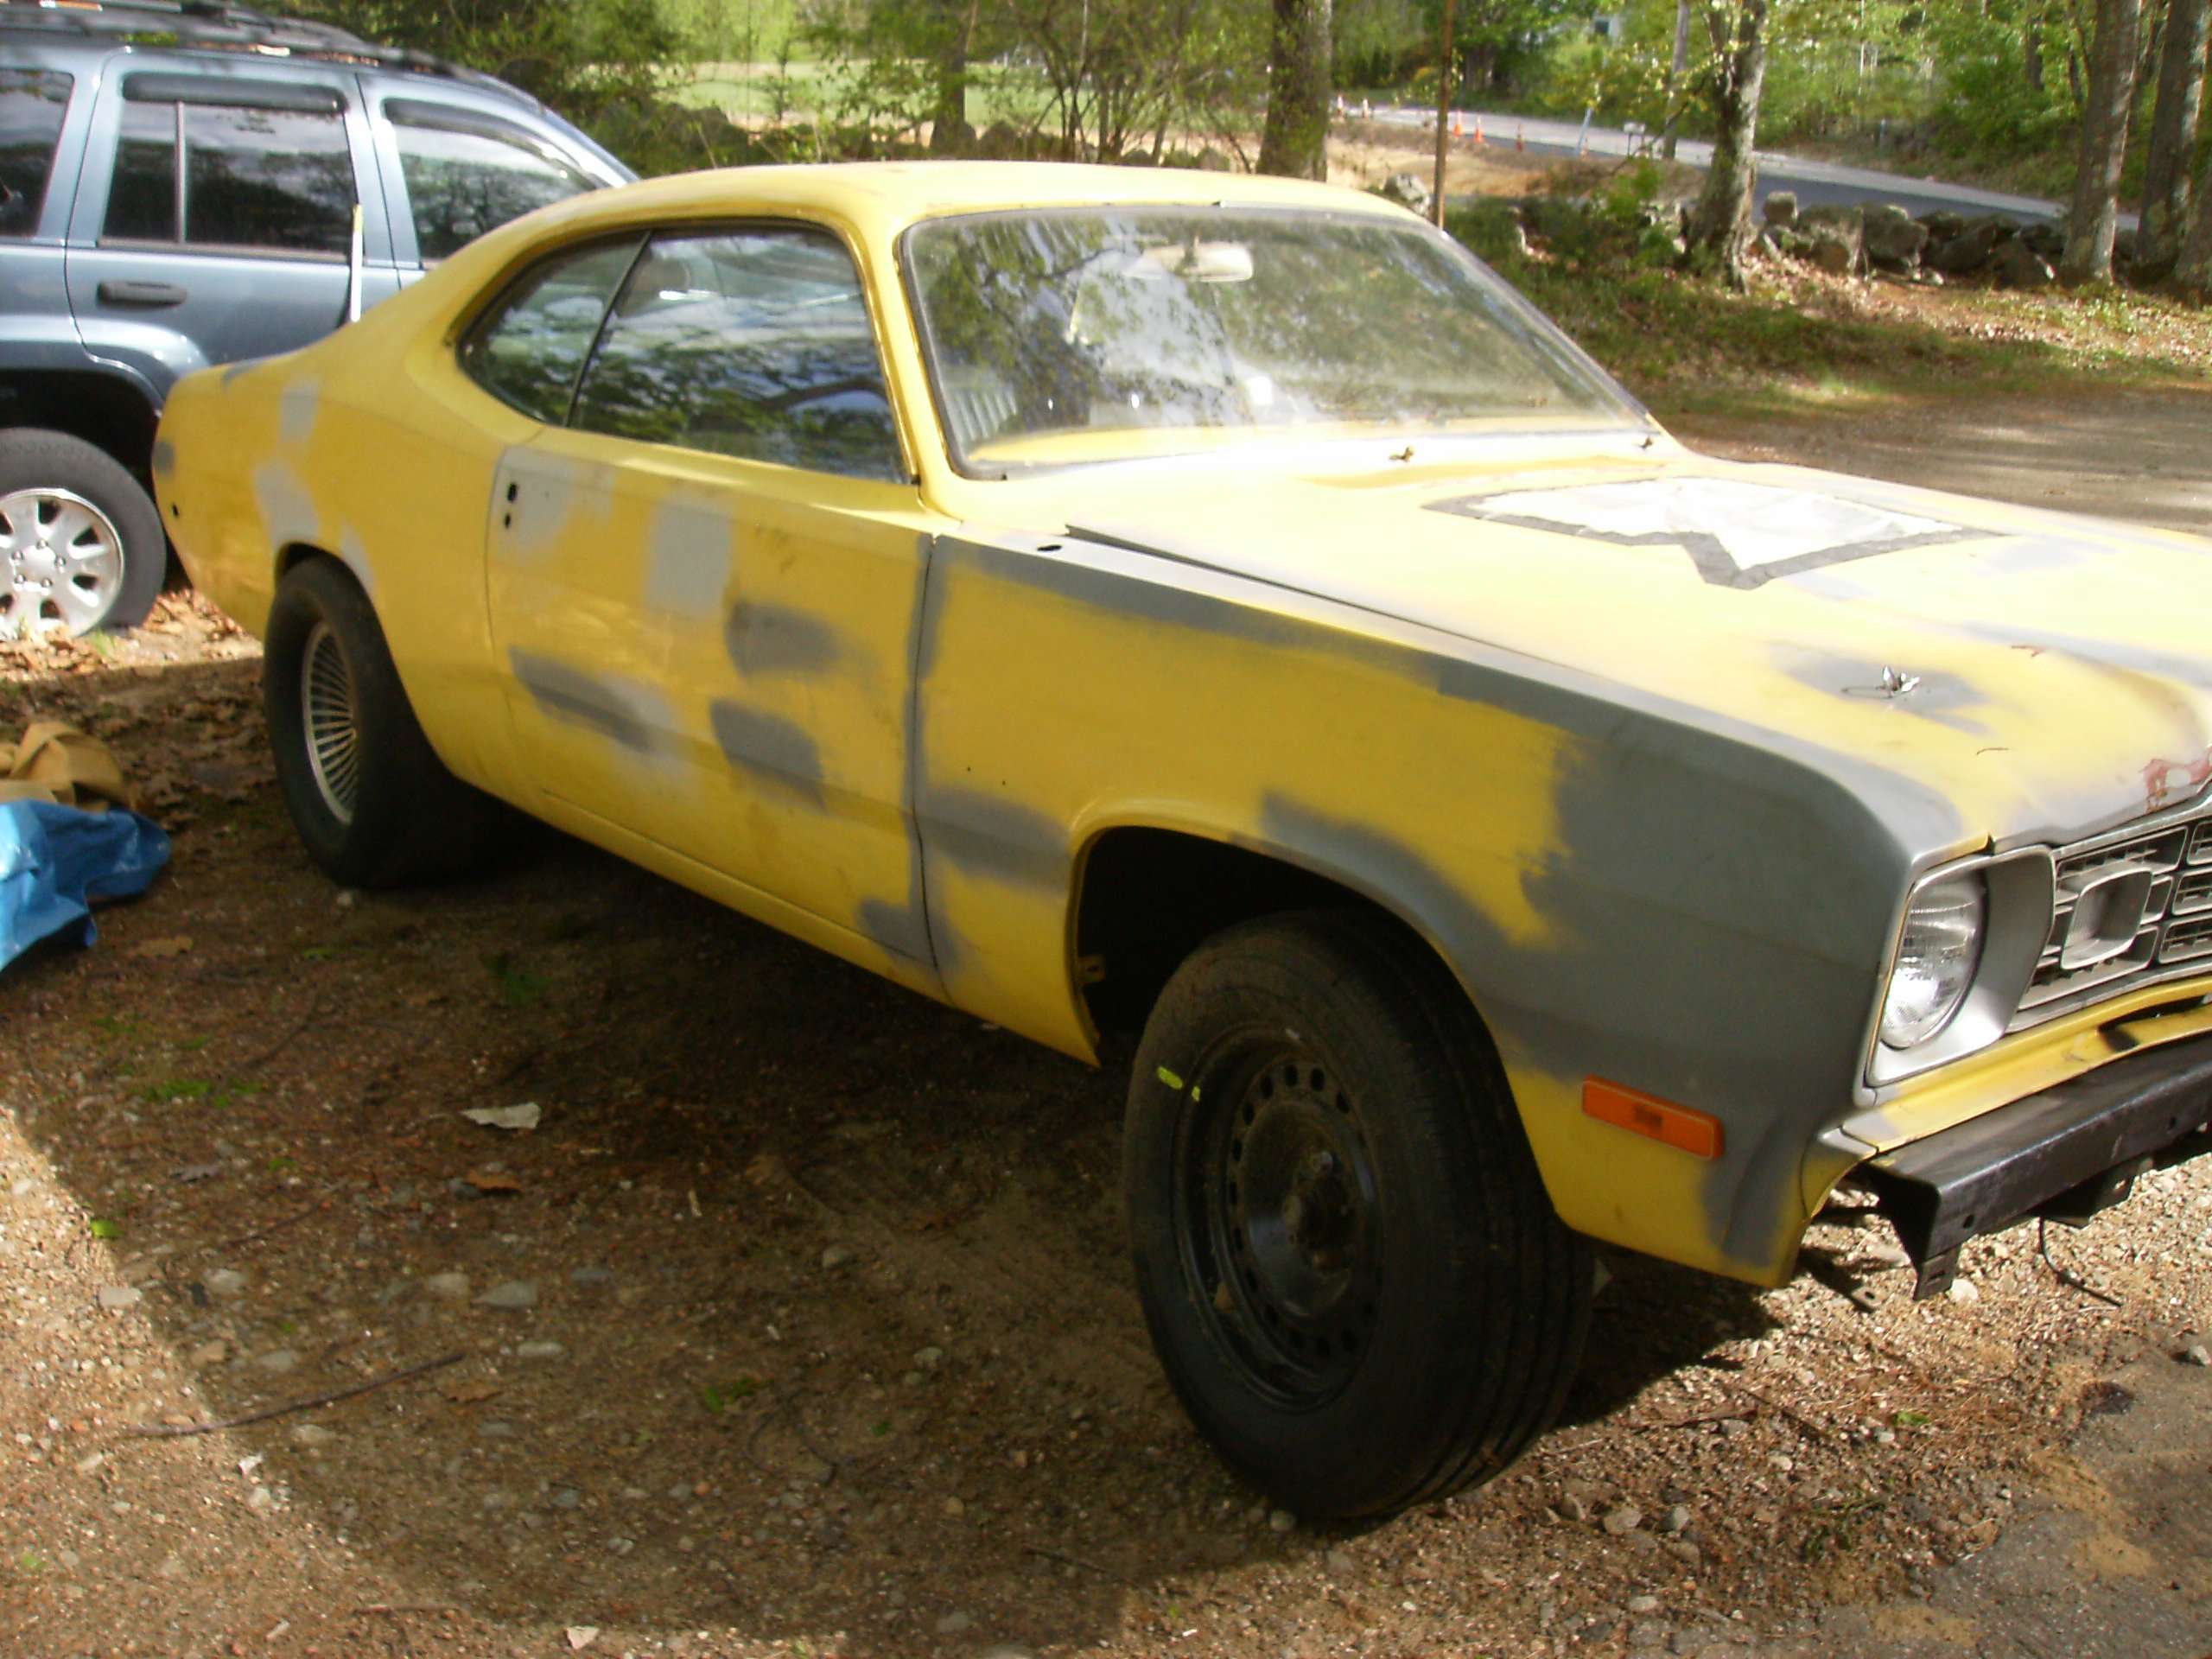 73 duster 340 with a sunroof how many moparts question and answer moparts forums. Black Bedroom Furniture Sets. Home Design Ideas